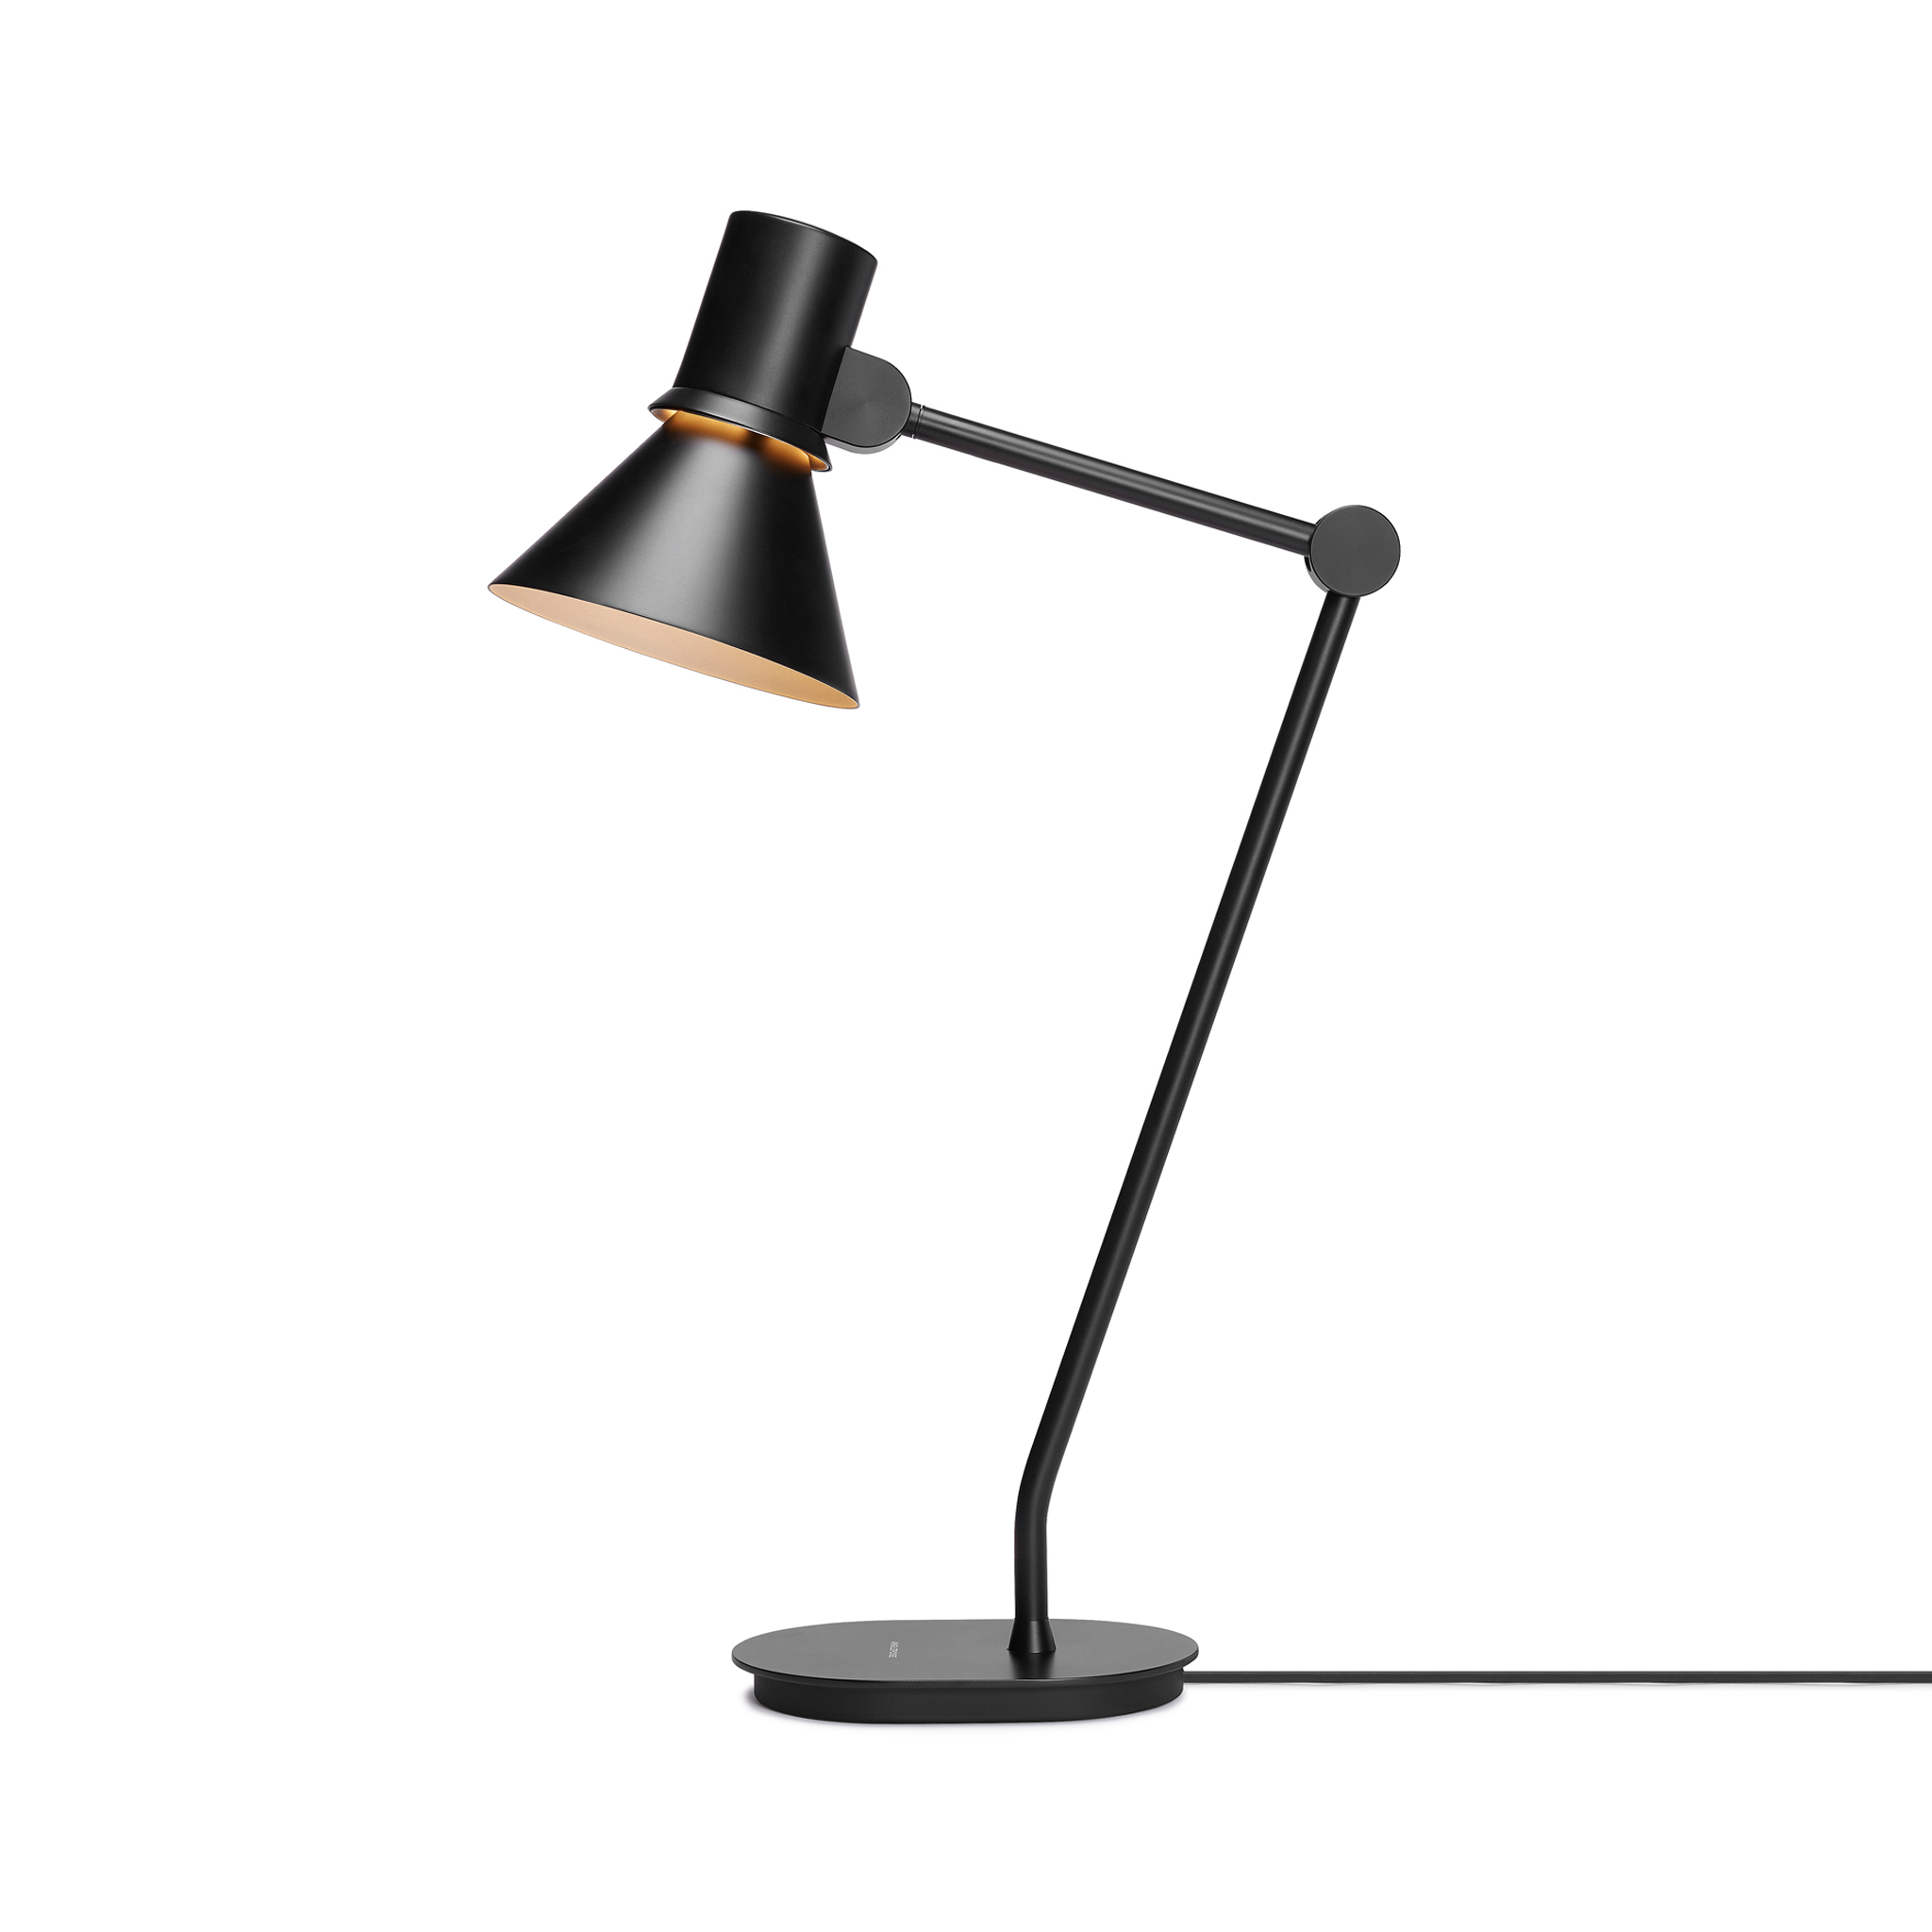 Type 80 Table Lamp by Kenneth Grange for Anglepoise